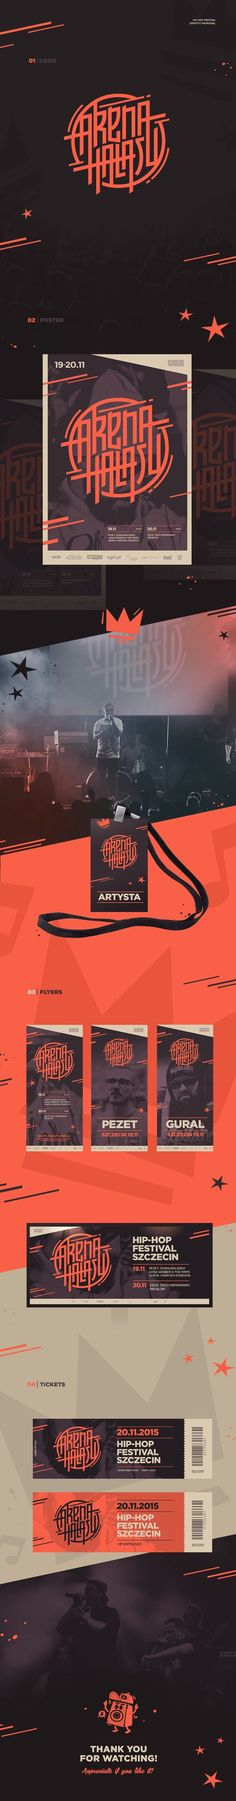 Arena Halasu Hip Hop Festival Branding by Piotr Kubicki | Fivestar Branding – Design and Branding Agency & Inspiration Gallery | Professional Logo and Website Design